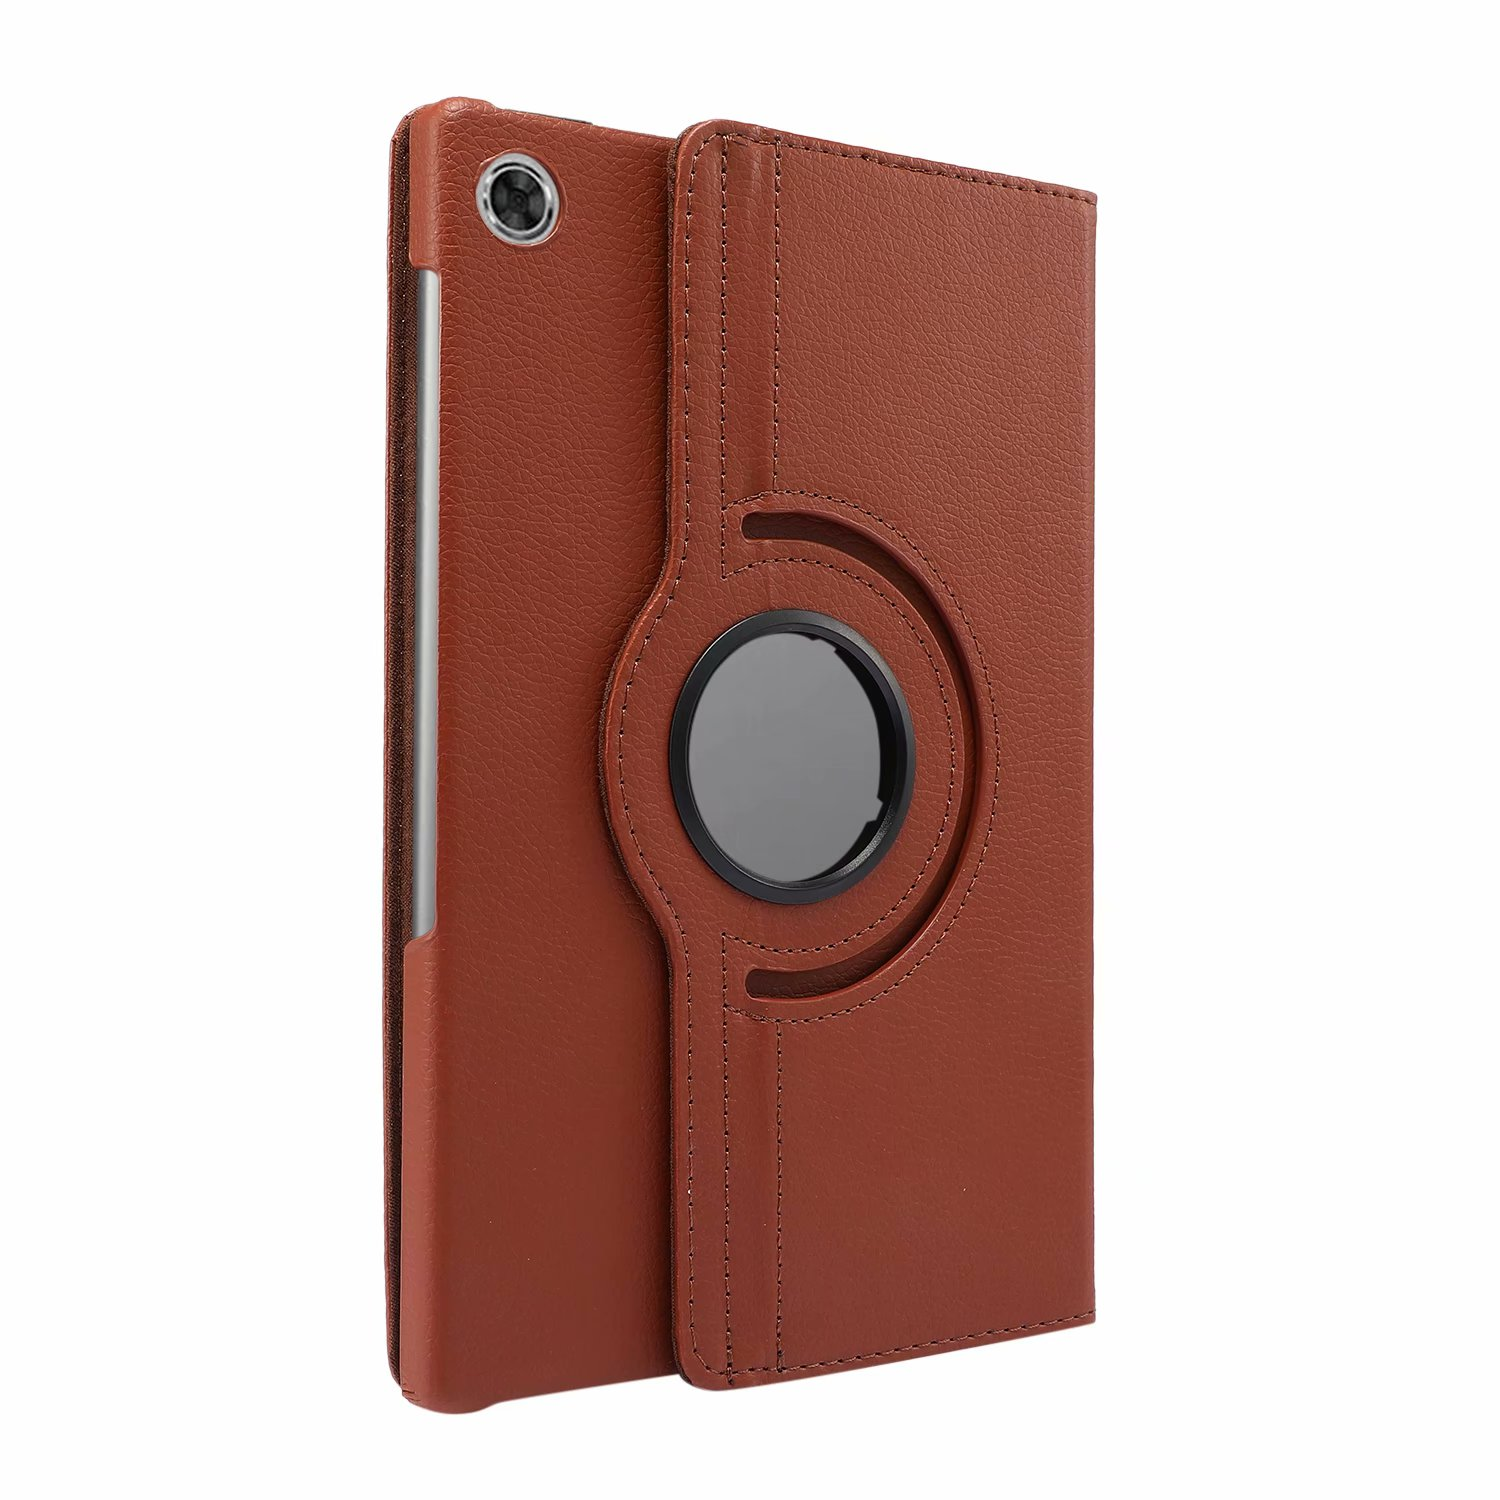 360 Degree Rotating Stand Tablet Cover For Lenovo Tab P11 TB-J606F P11 Pro TB-J706F M10 Plus TB-X606F M10 TB-X605 TB-X505 Case